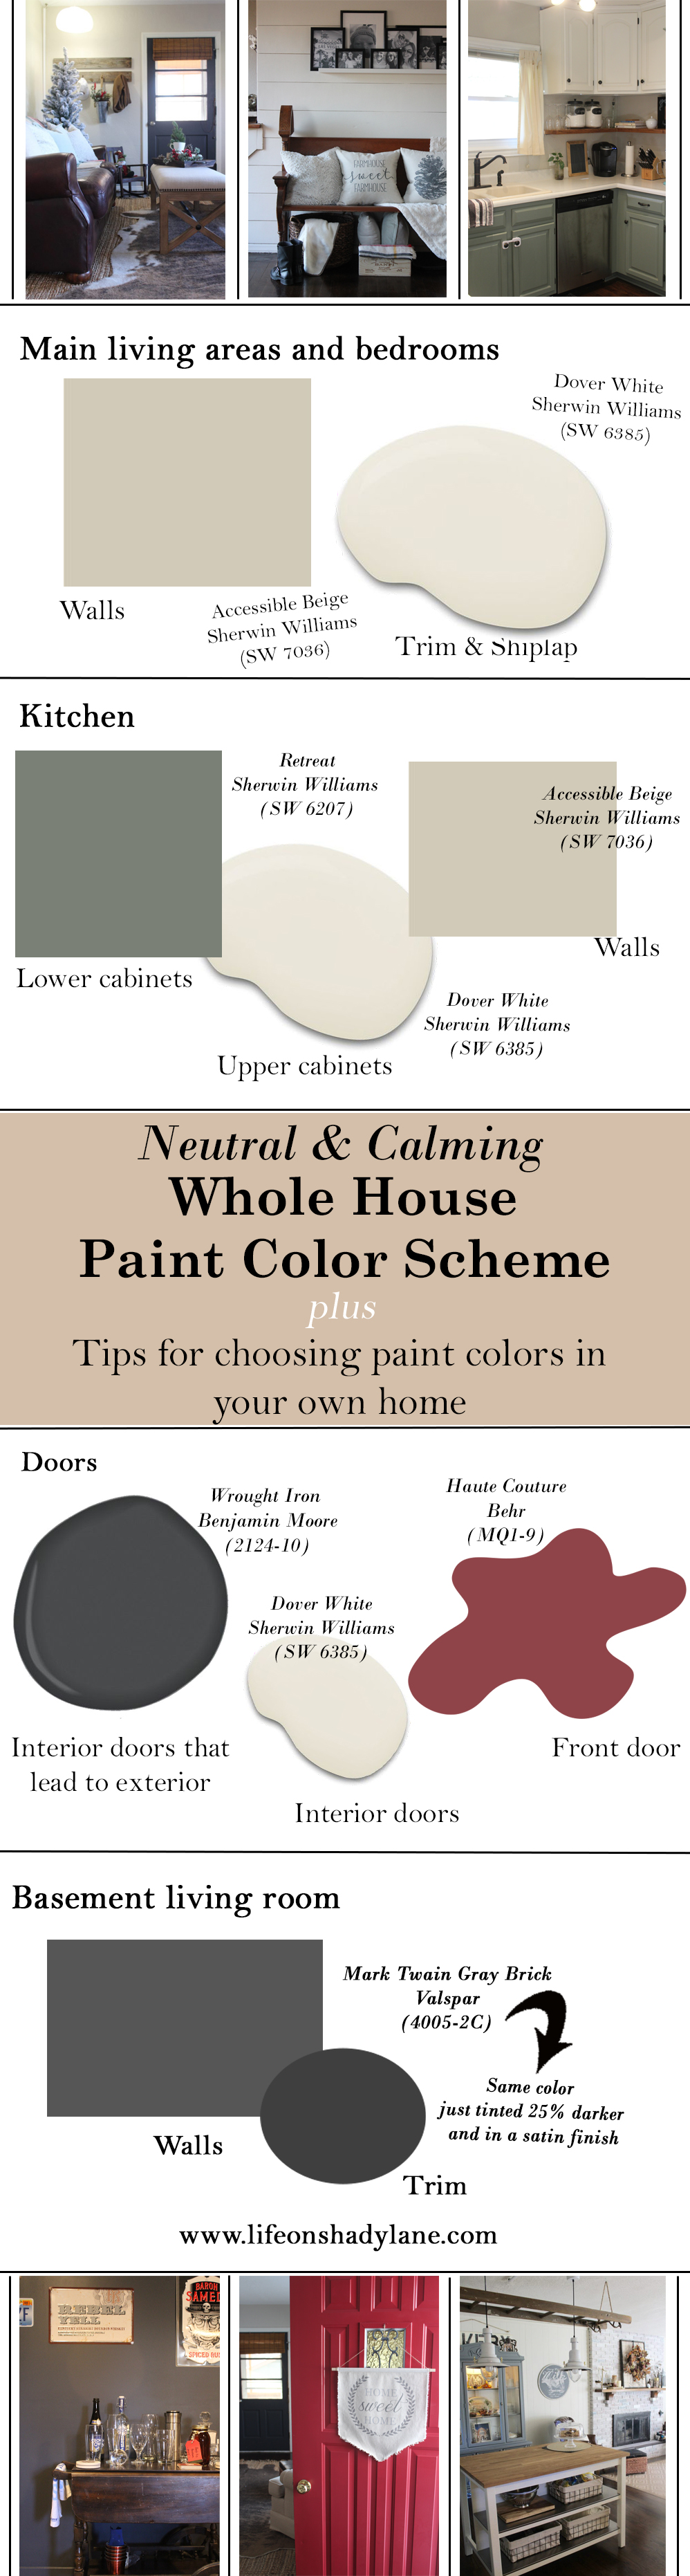 Tips On Blending Great Colors With Beige: The Paint Colors We Used In Our Home + My Tips On Picking